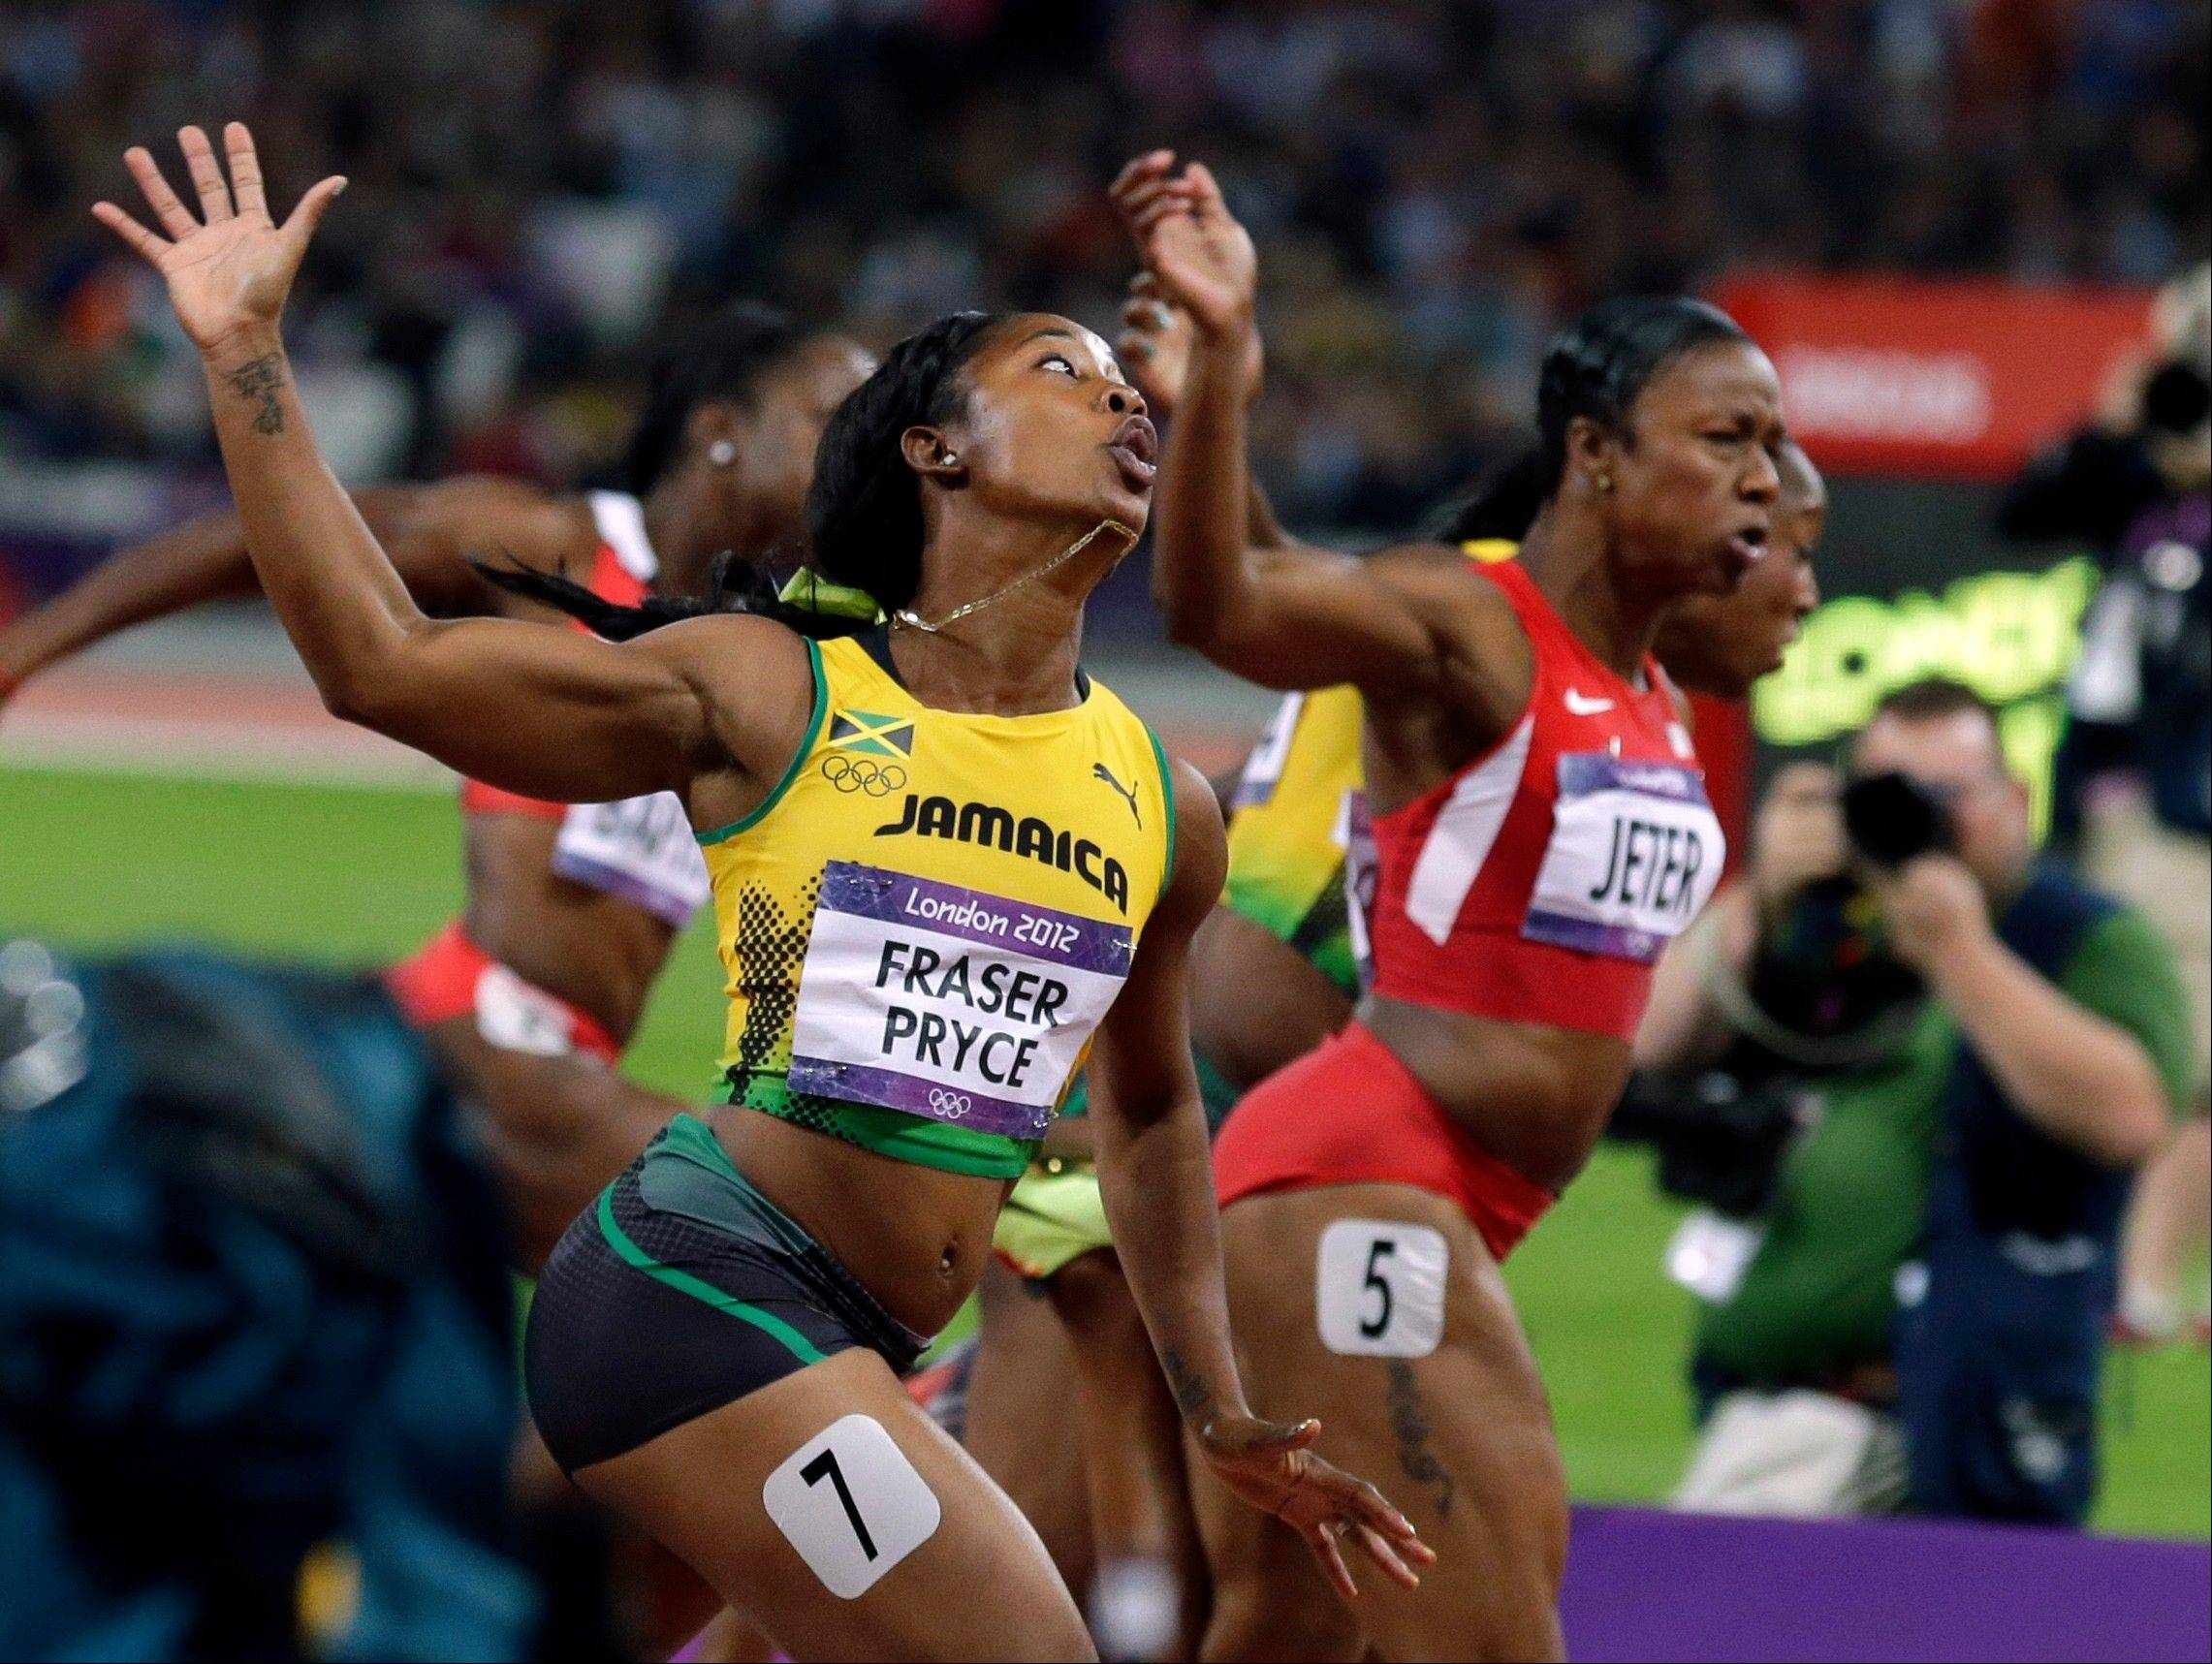 Jamaica�s Shelly-Ann Fraser-Pryce, left, crosses the finish line ahead of the United States� Carmelita Jeter Saturday during the women�s 100-meter final during at the Olympic Stadium. Fraser-Pryce won the gold, Jeter finished second.